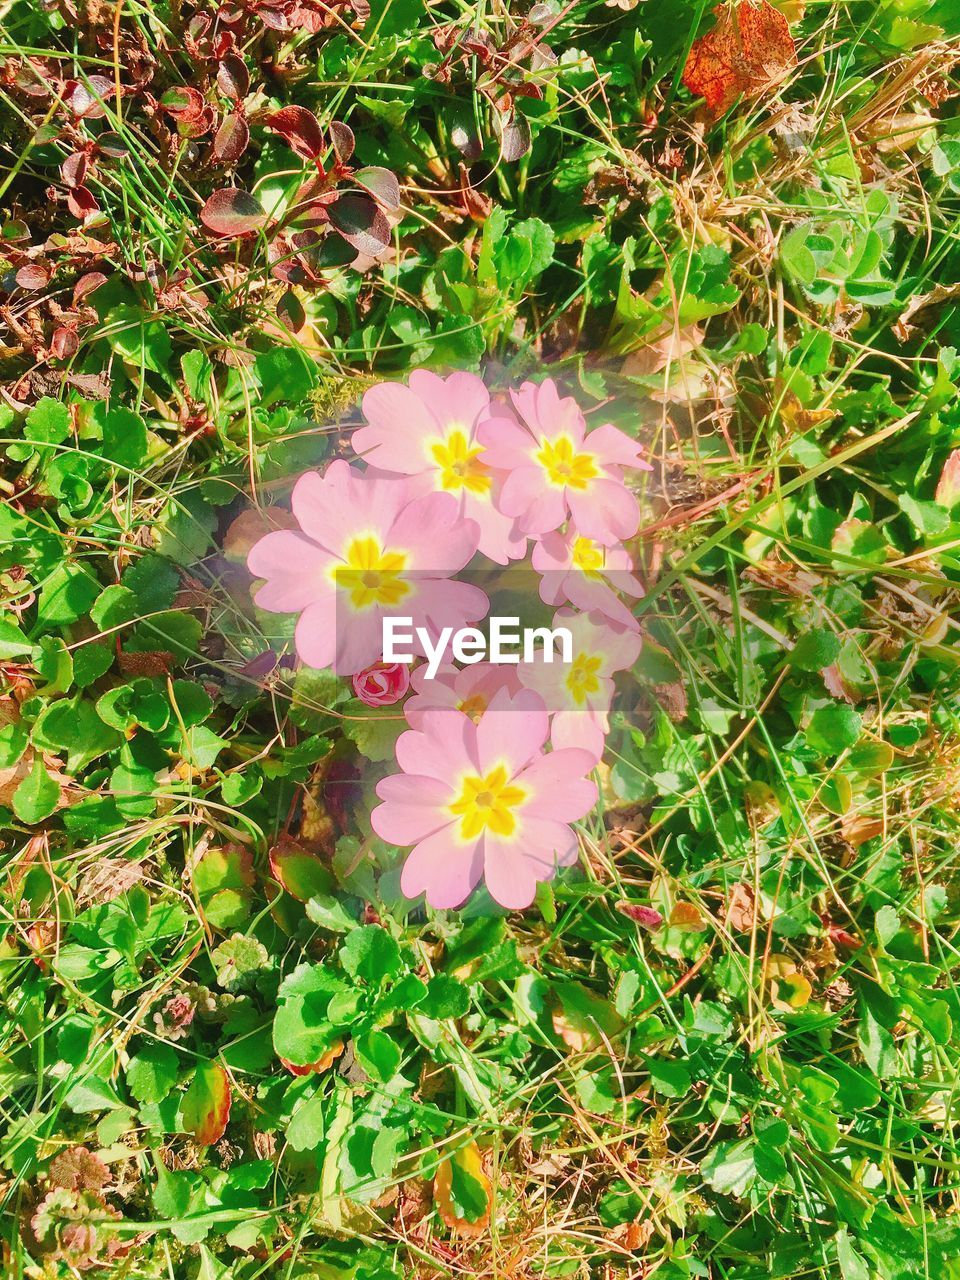 flower, nature, petal, flower head, beauty in nature, field, high angle view, growth, fragility, day, plant, freshness, blooming, no people, outdoors, green color, grass, close-up, zinnia, periwinkle